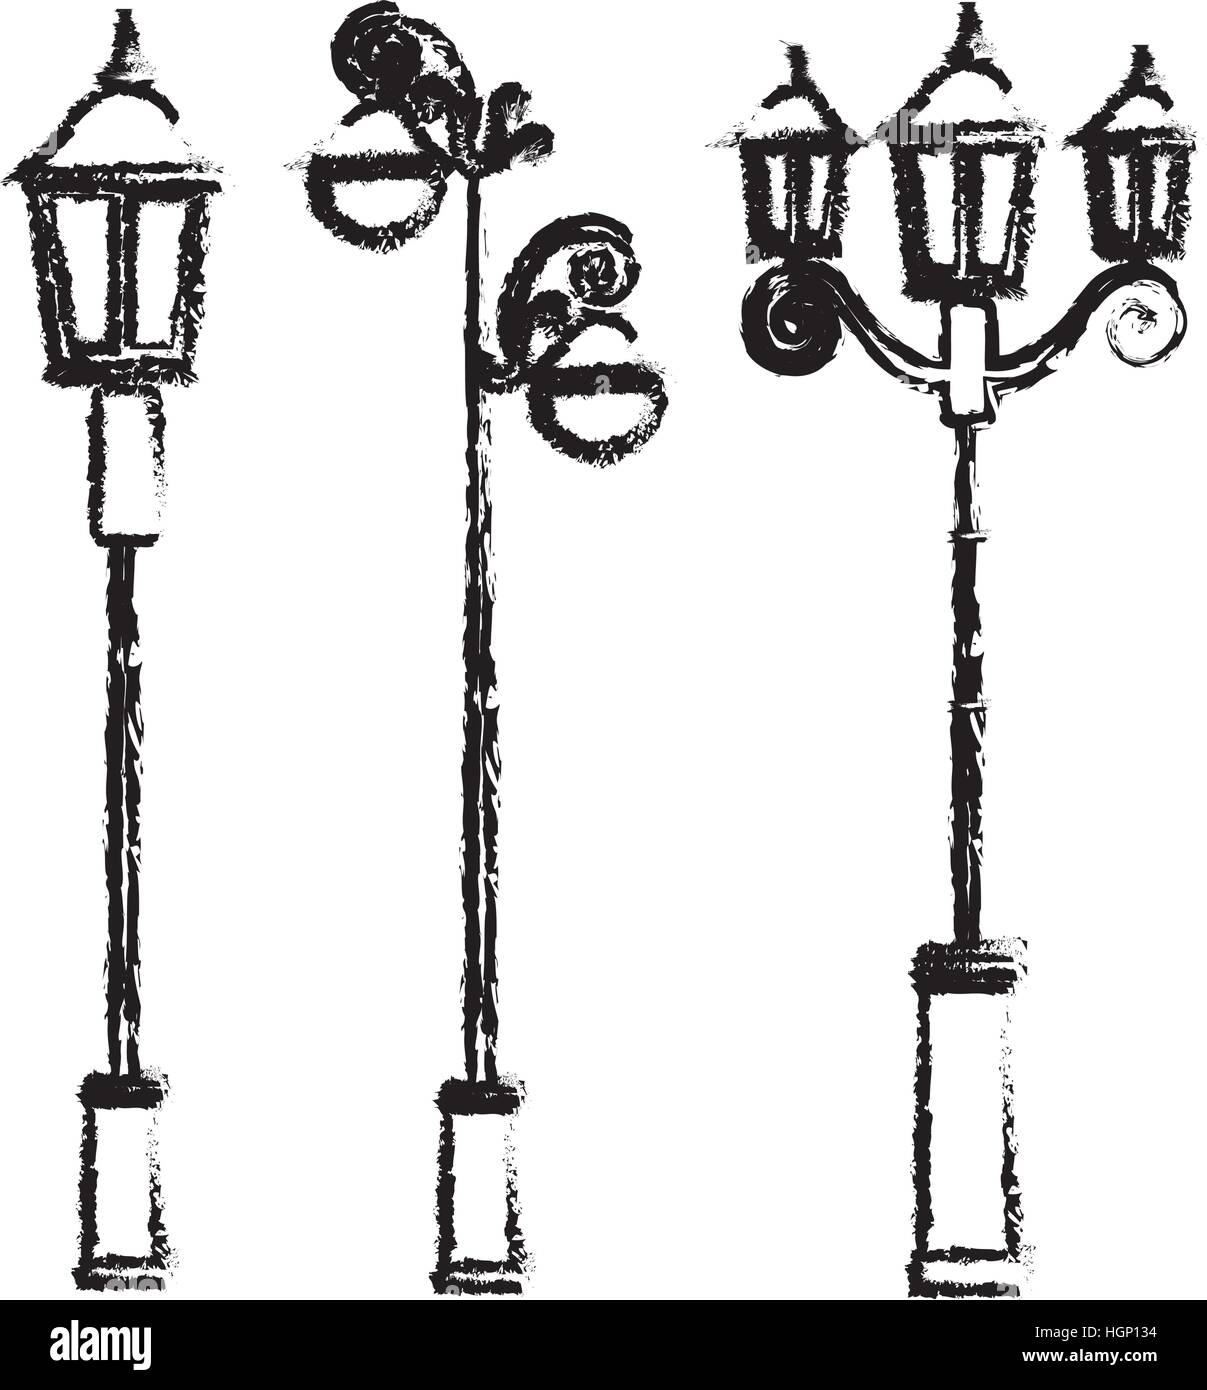 street lamp icon image sketch style vector illustration design Stock Vector